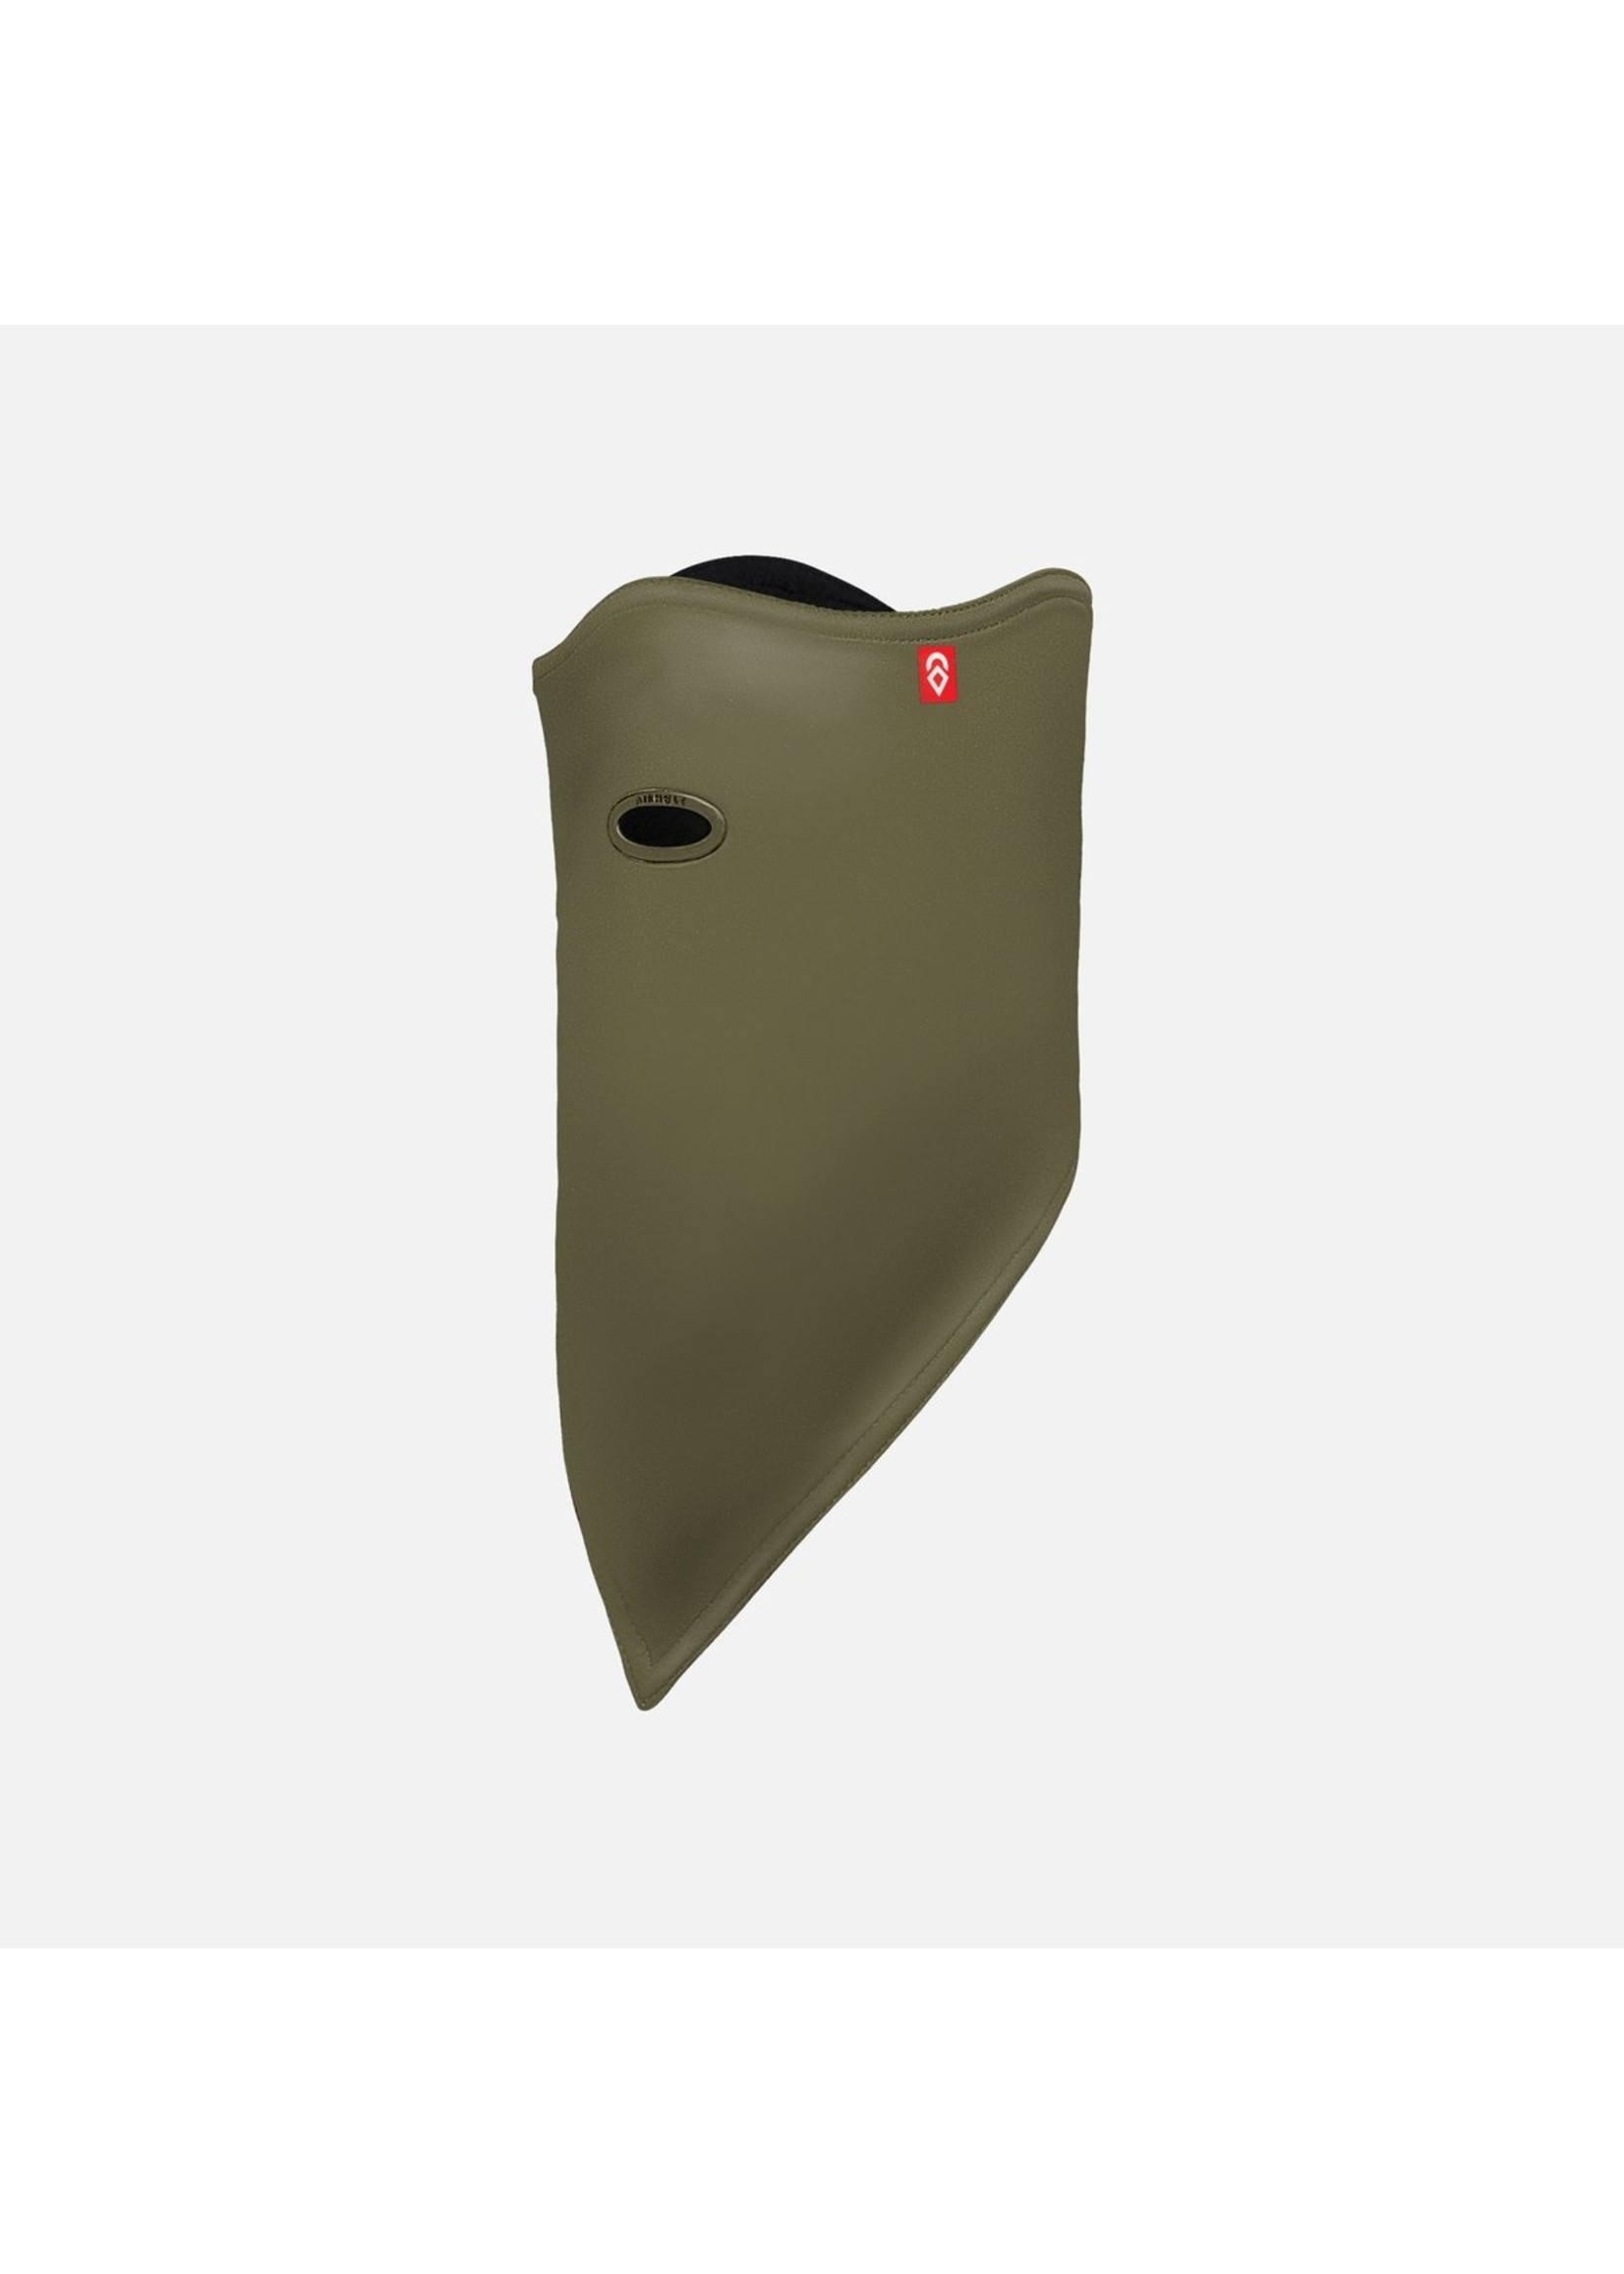 Airhole FACEMASK STANDARD 2 LAYER